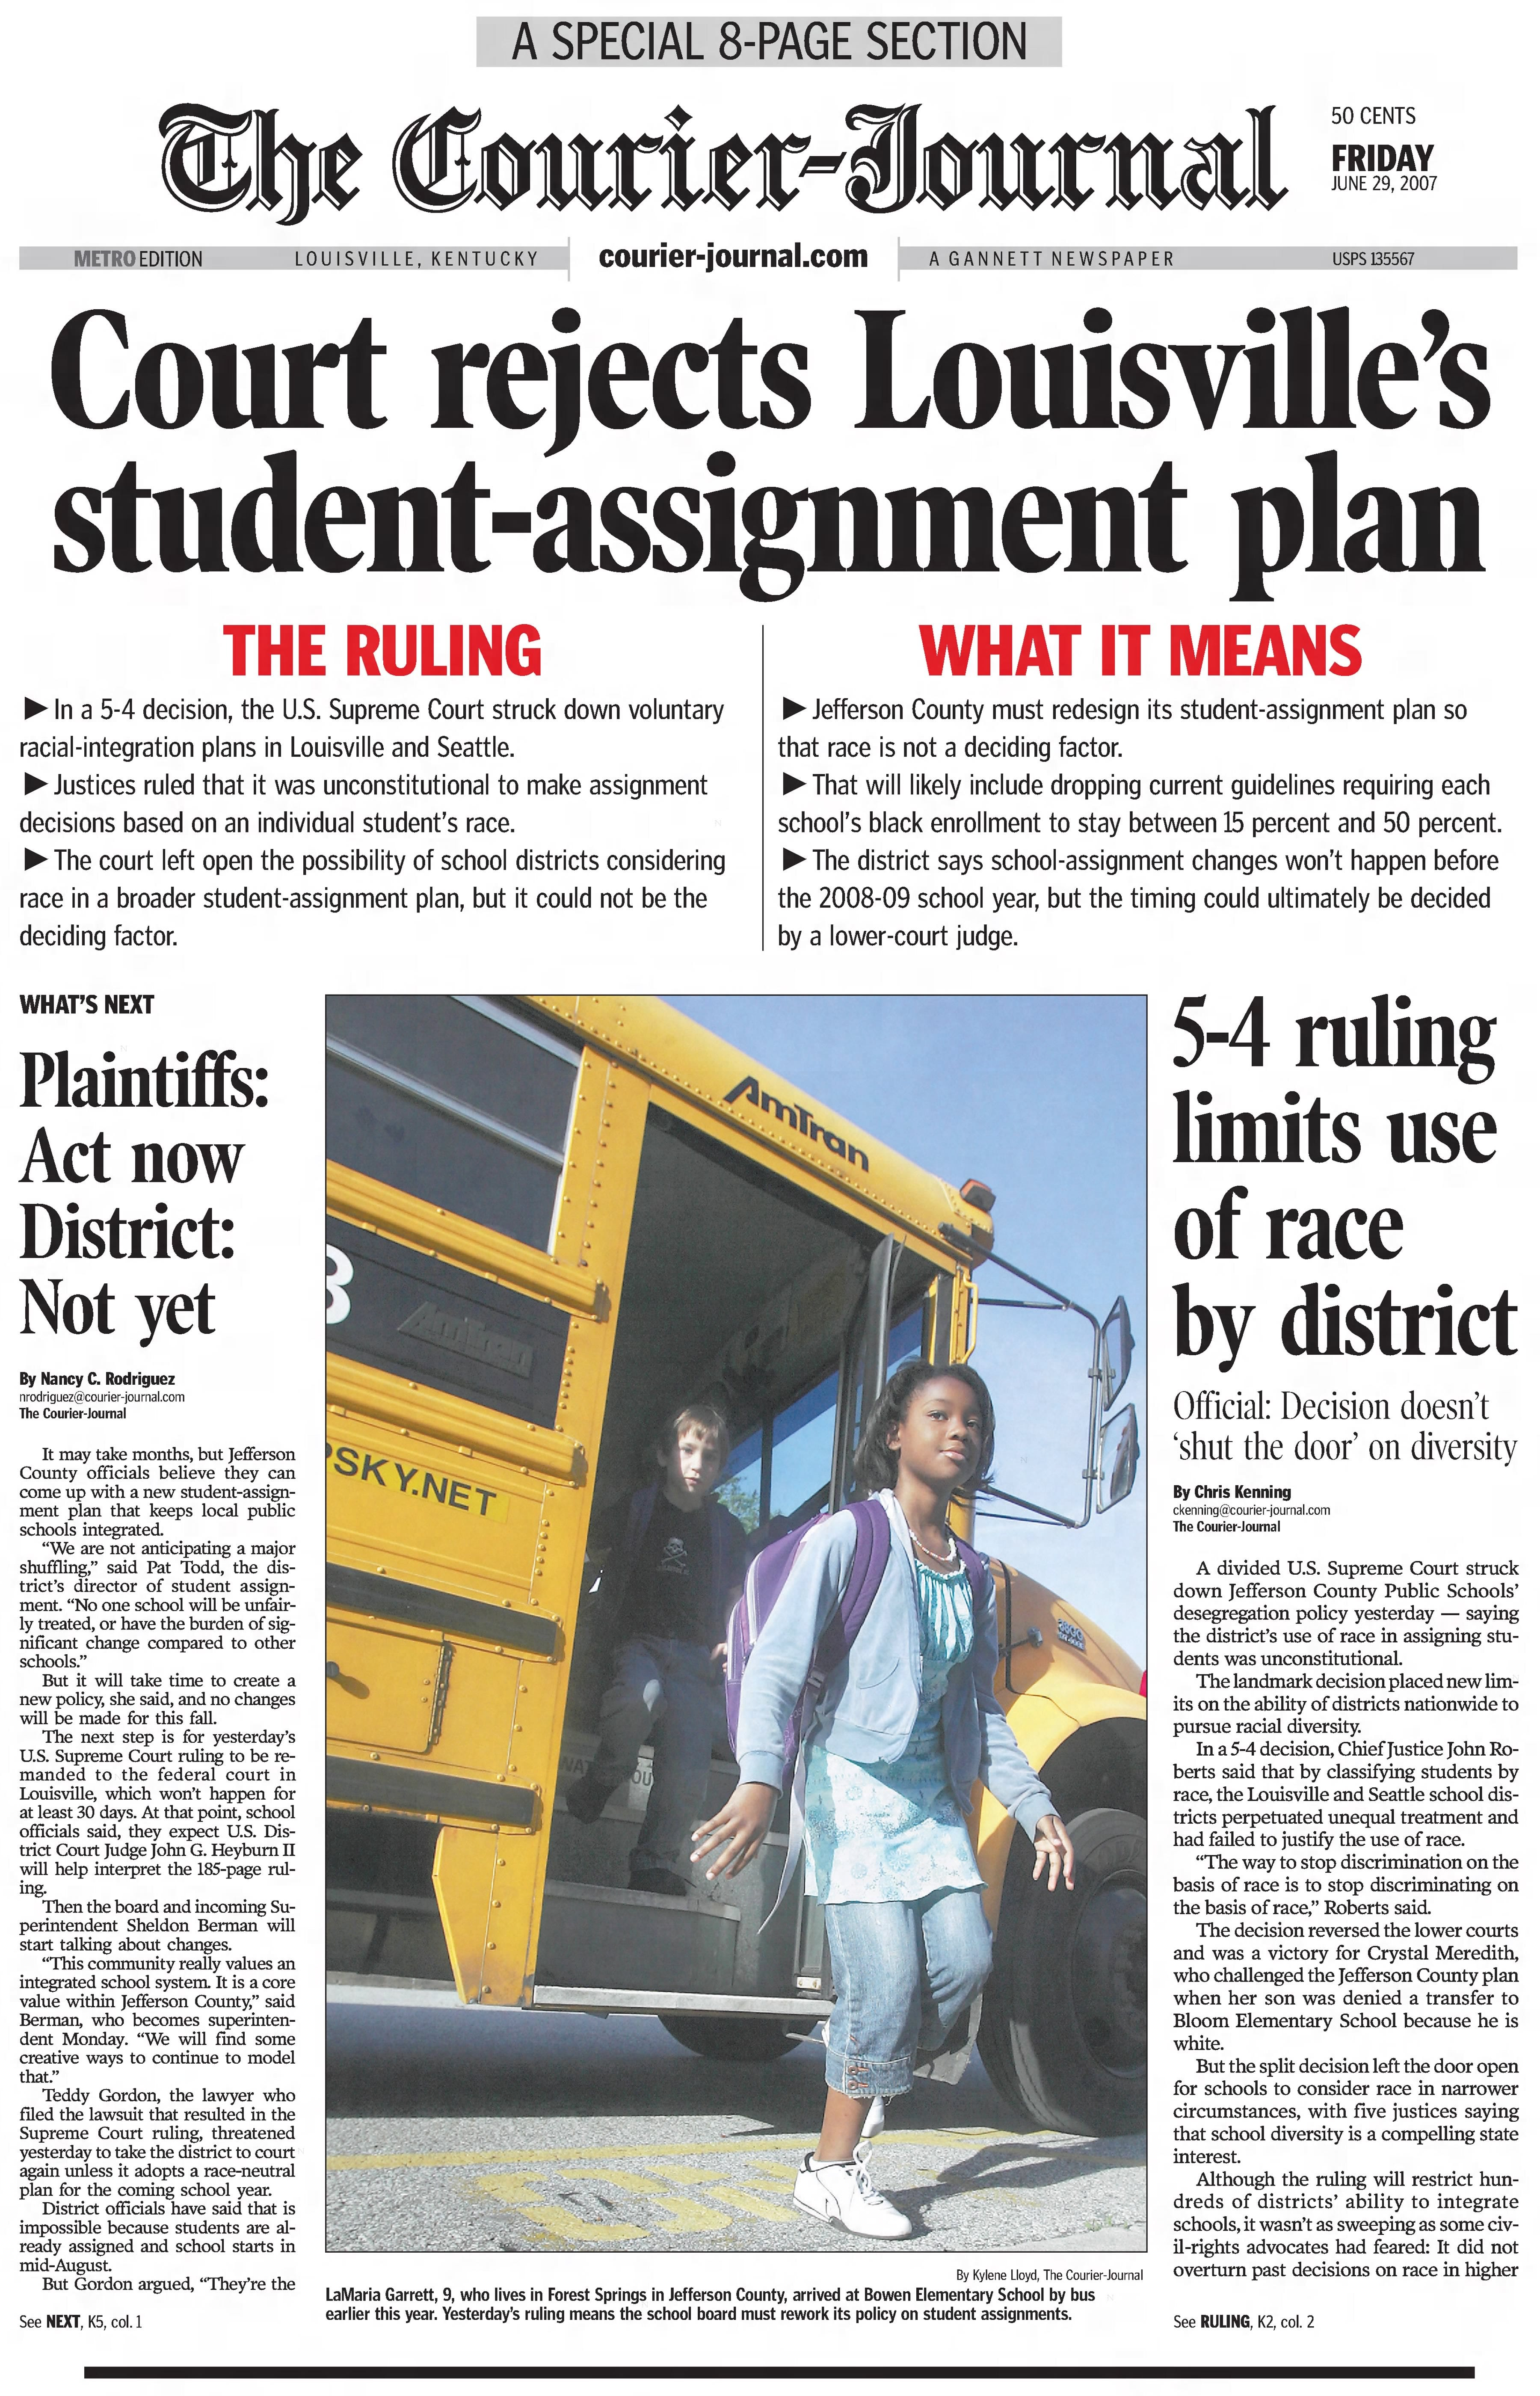 The front page of a June 29, 2007, Courier Journal special section covering the impact of the U.S. Supreme Court decision that struck down Jefferson County's school integration plan.